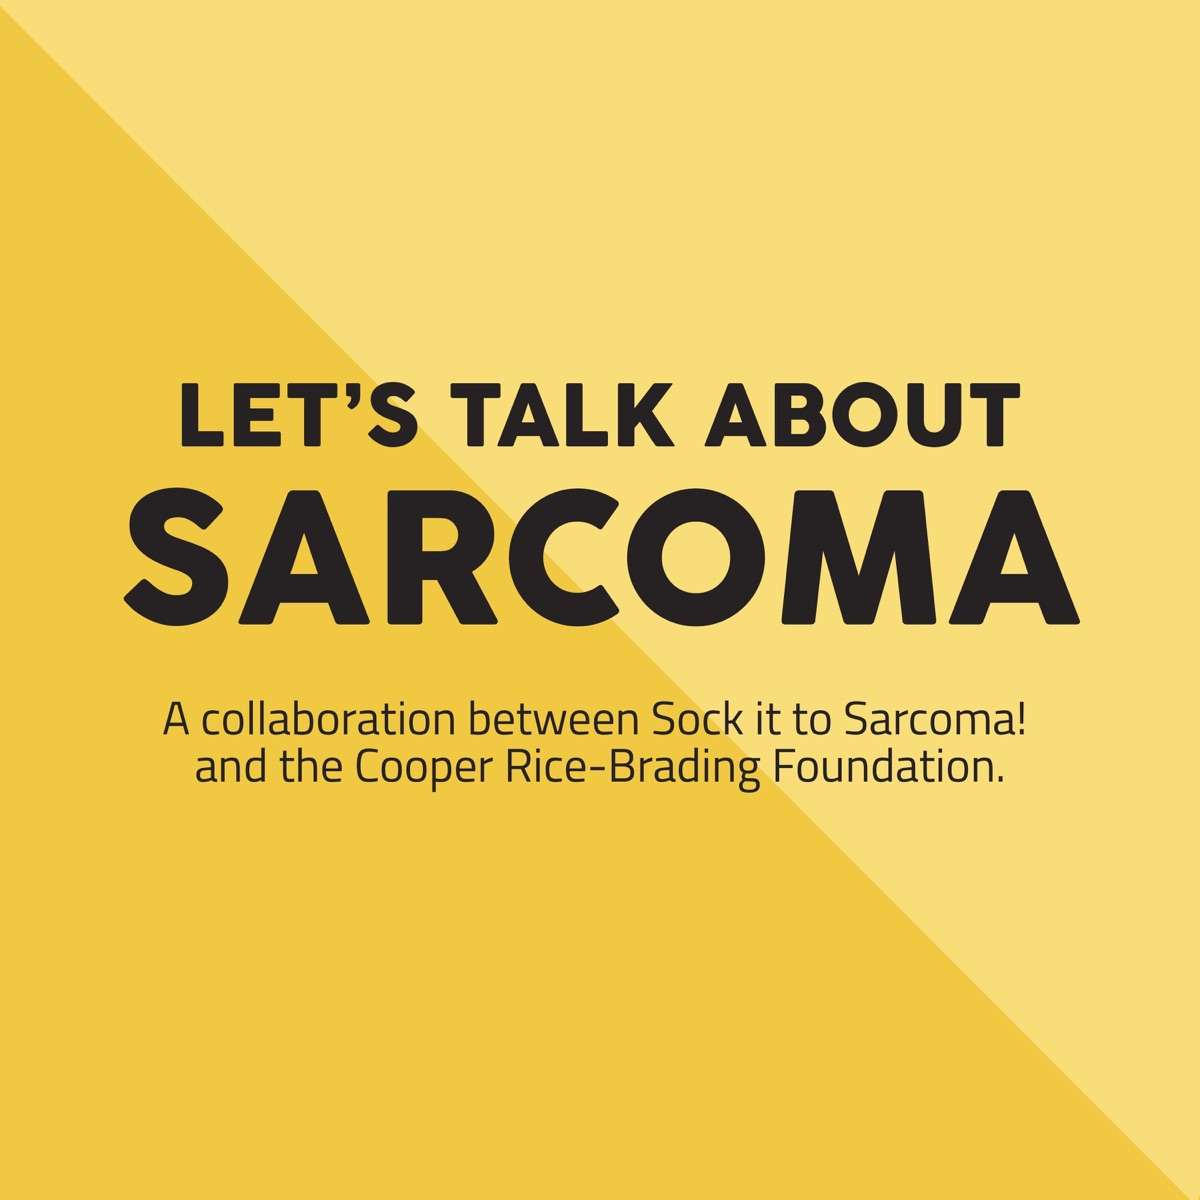 Let's Talk About Sarcoma